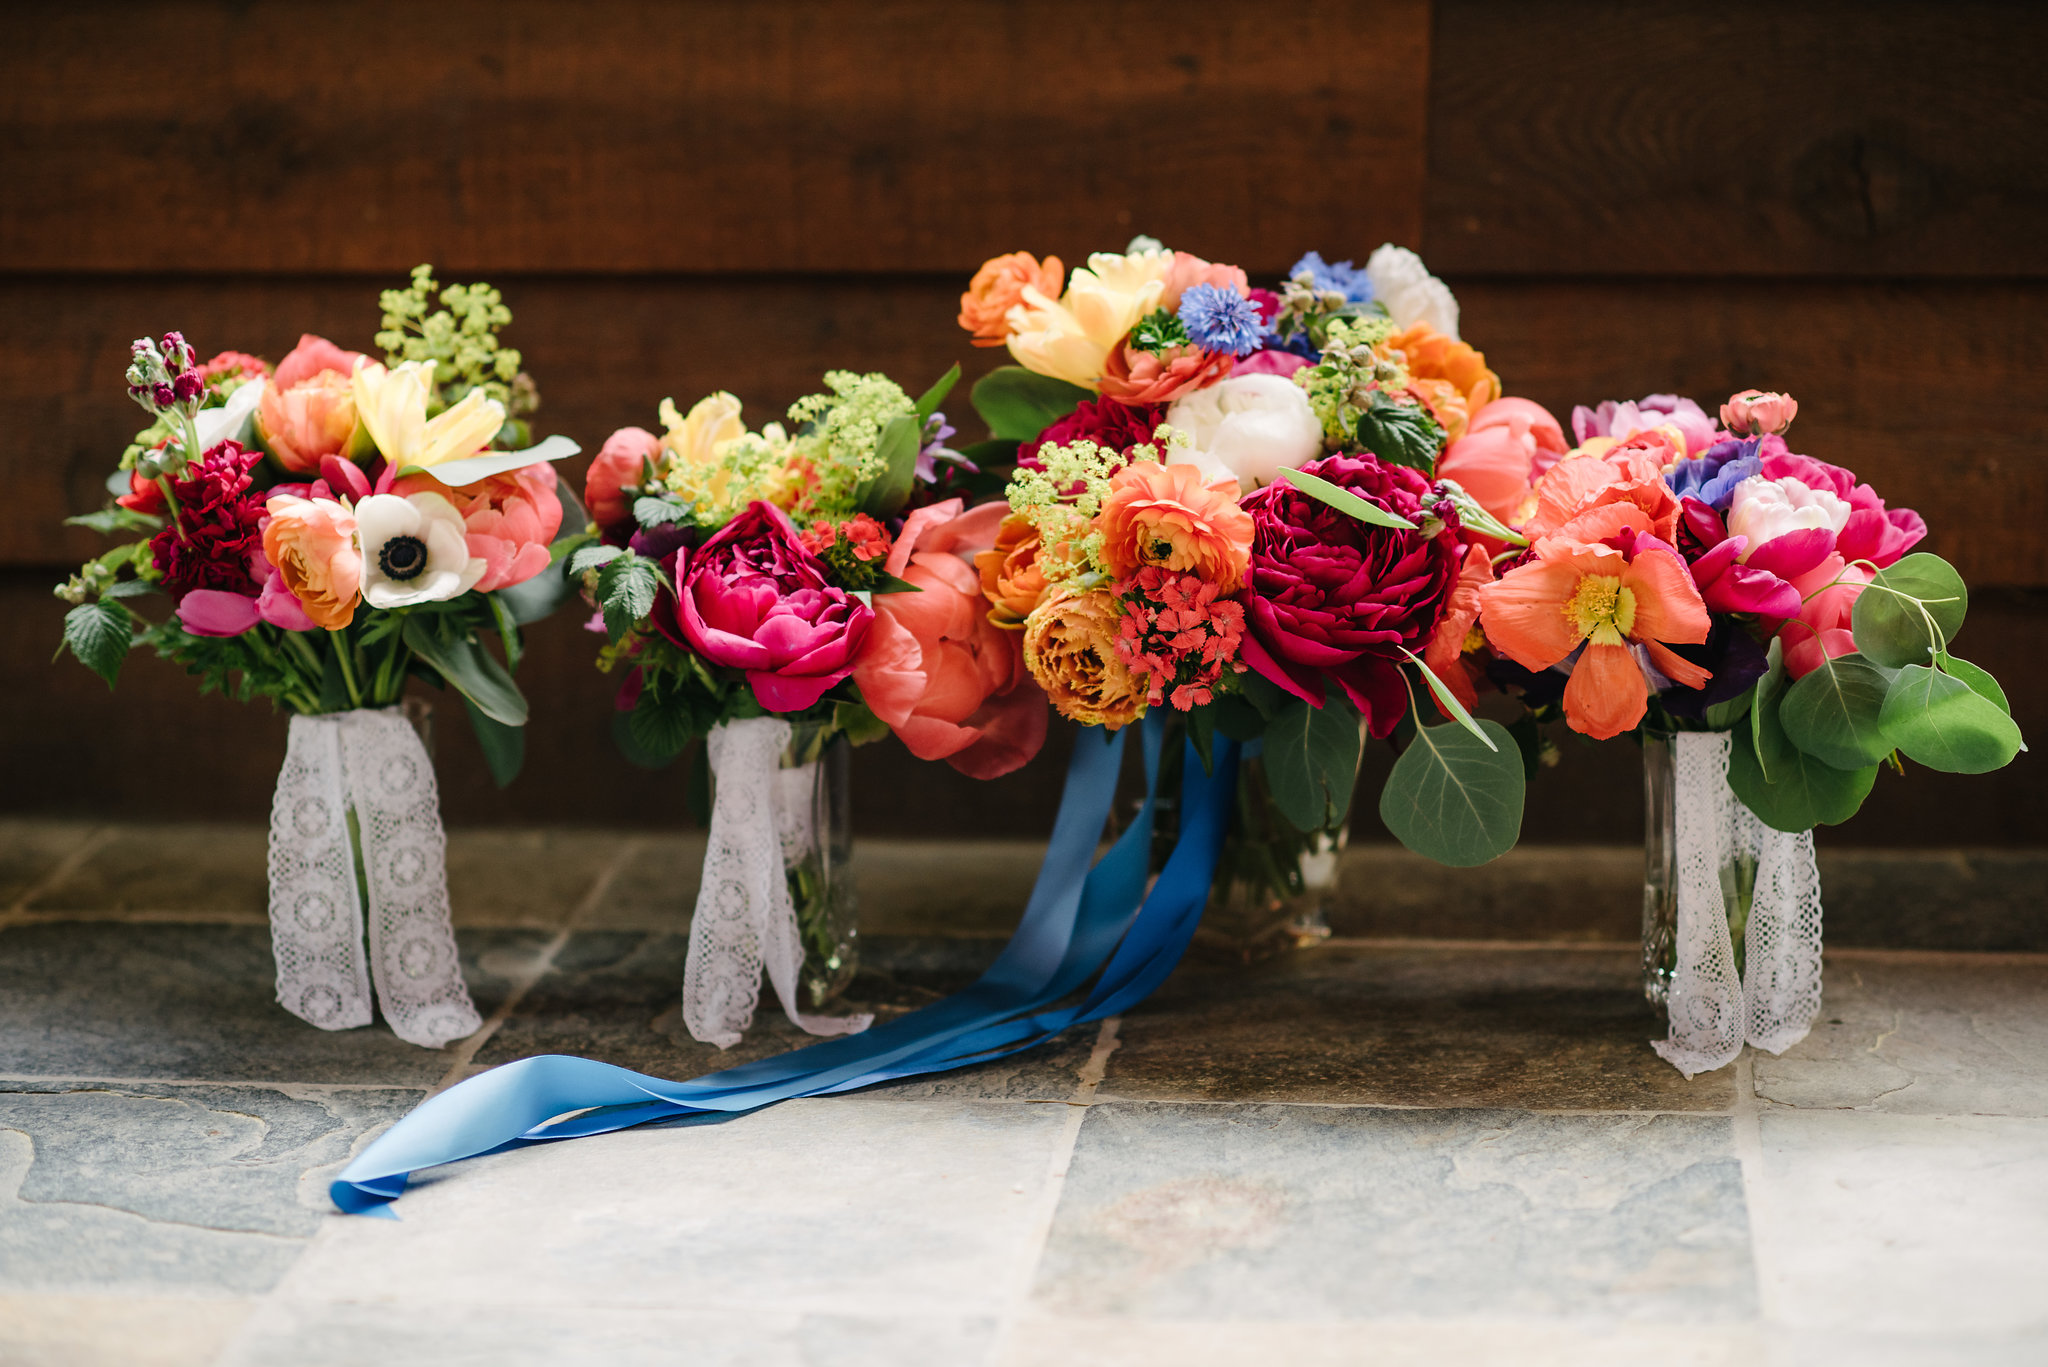 Brightly colored bouquets of farm flowers